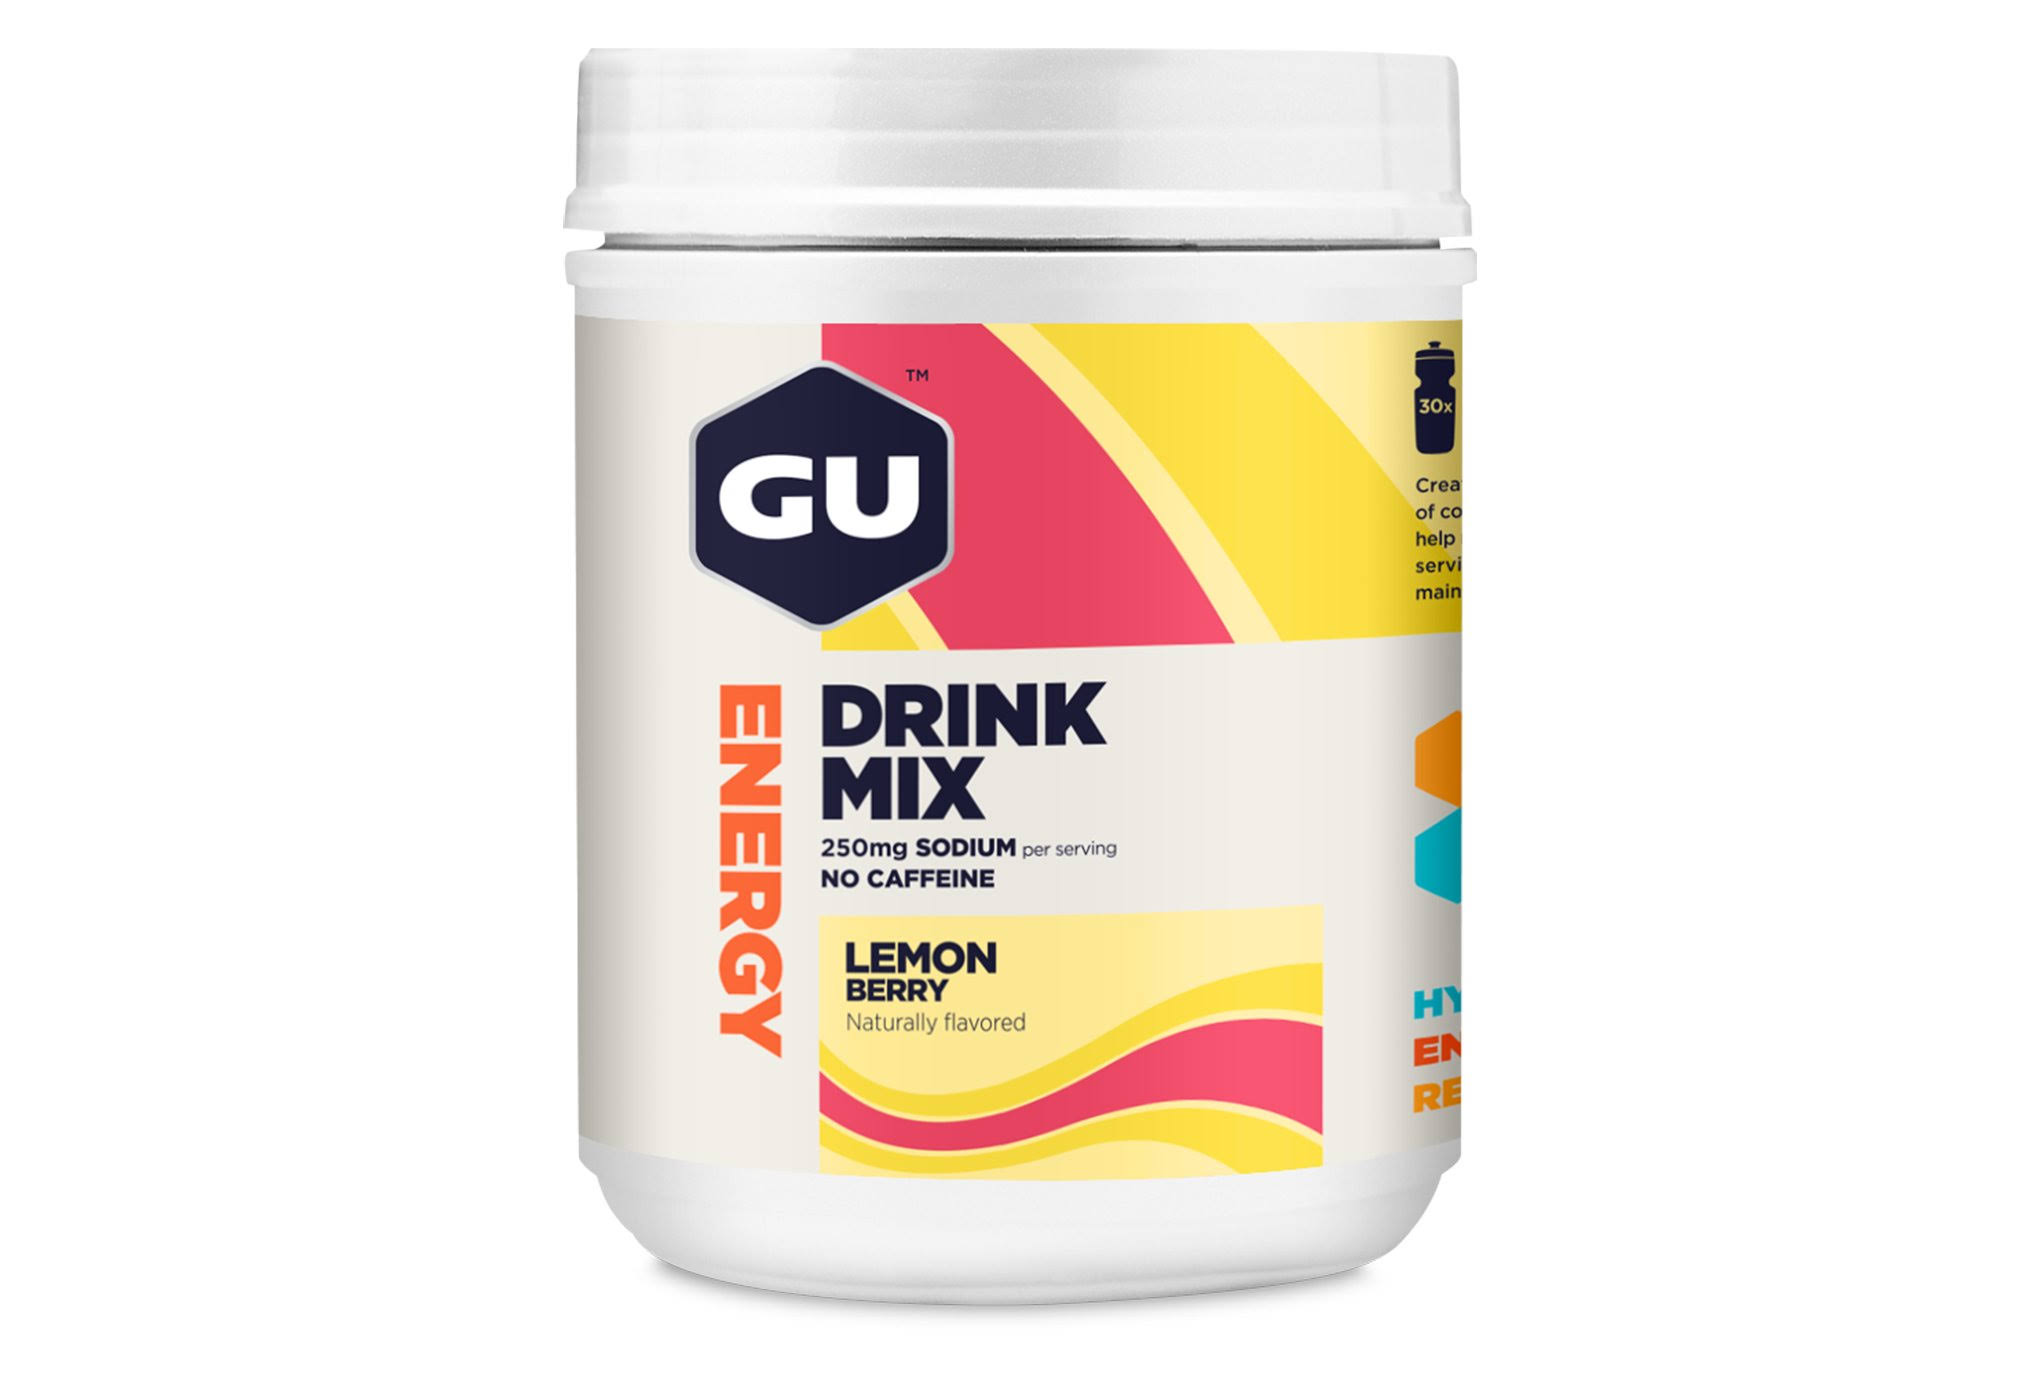 GU Energy Drink Mix 840 grams Lemon Berry